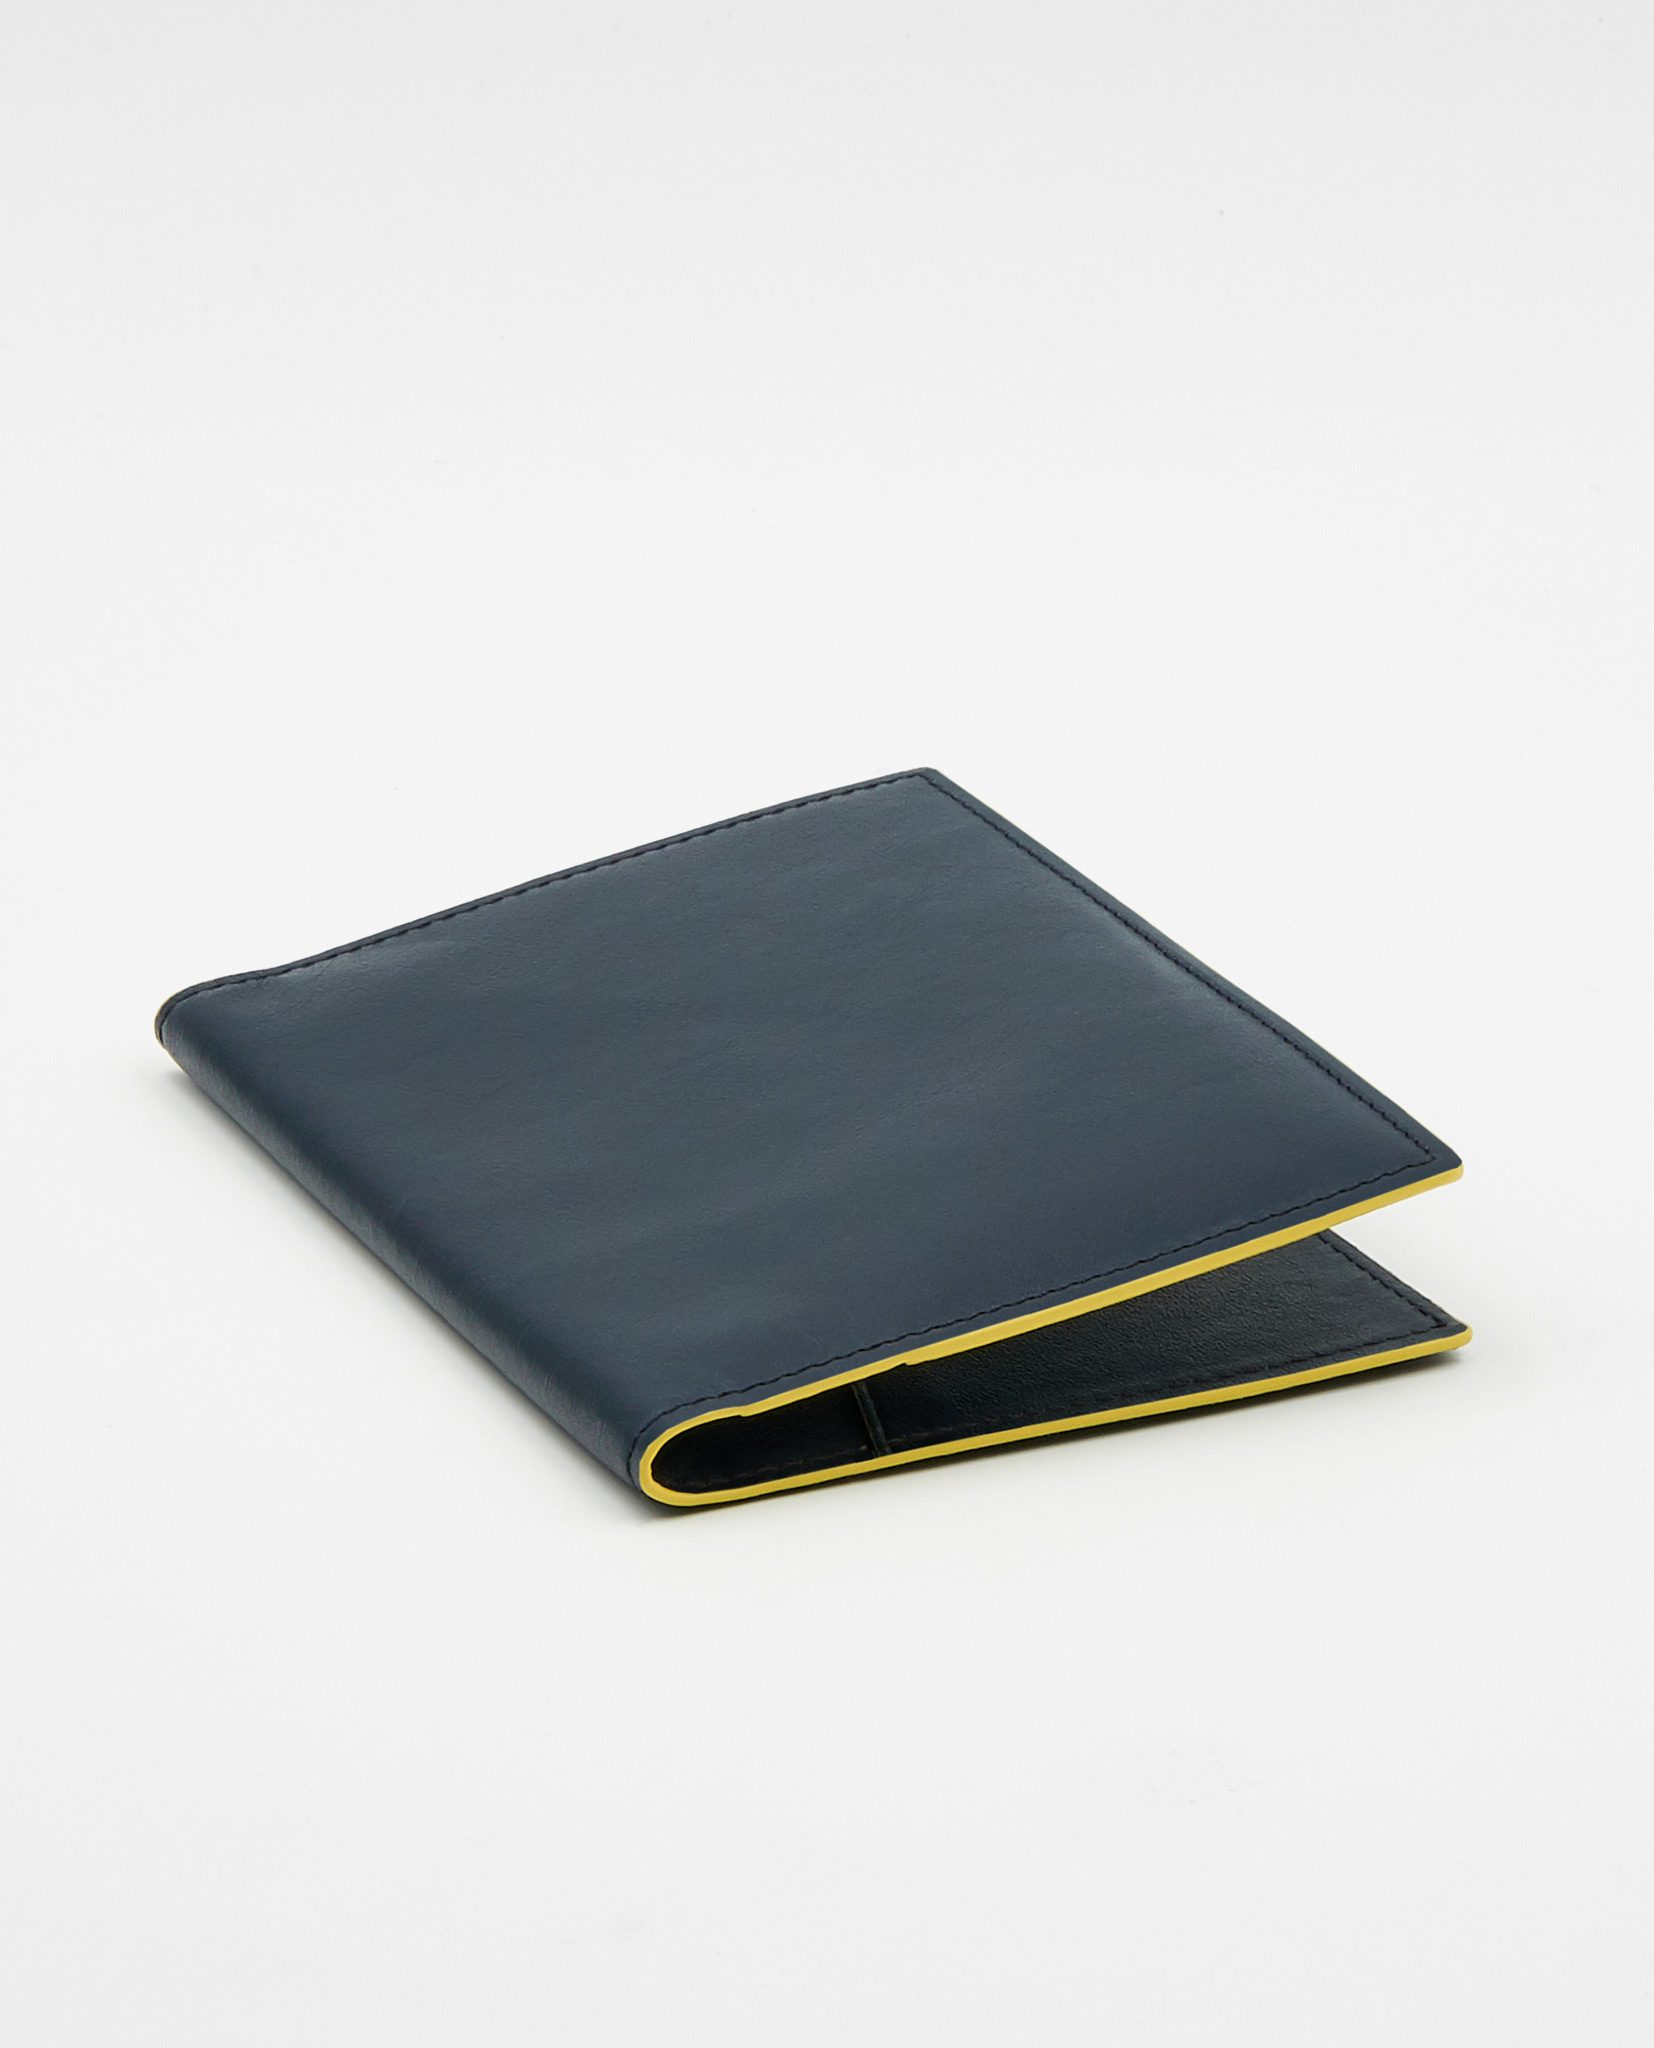 Soofre Smooth Leather Passport Holder Color Navy Yellow